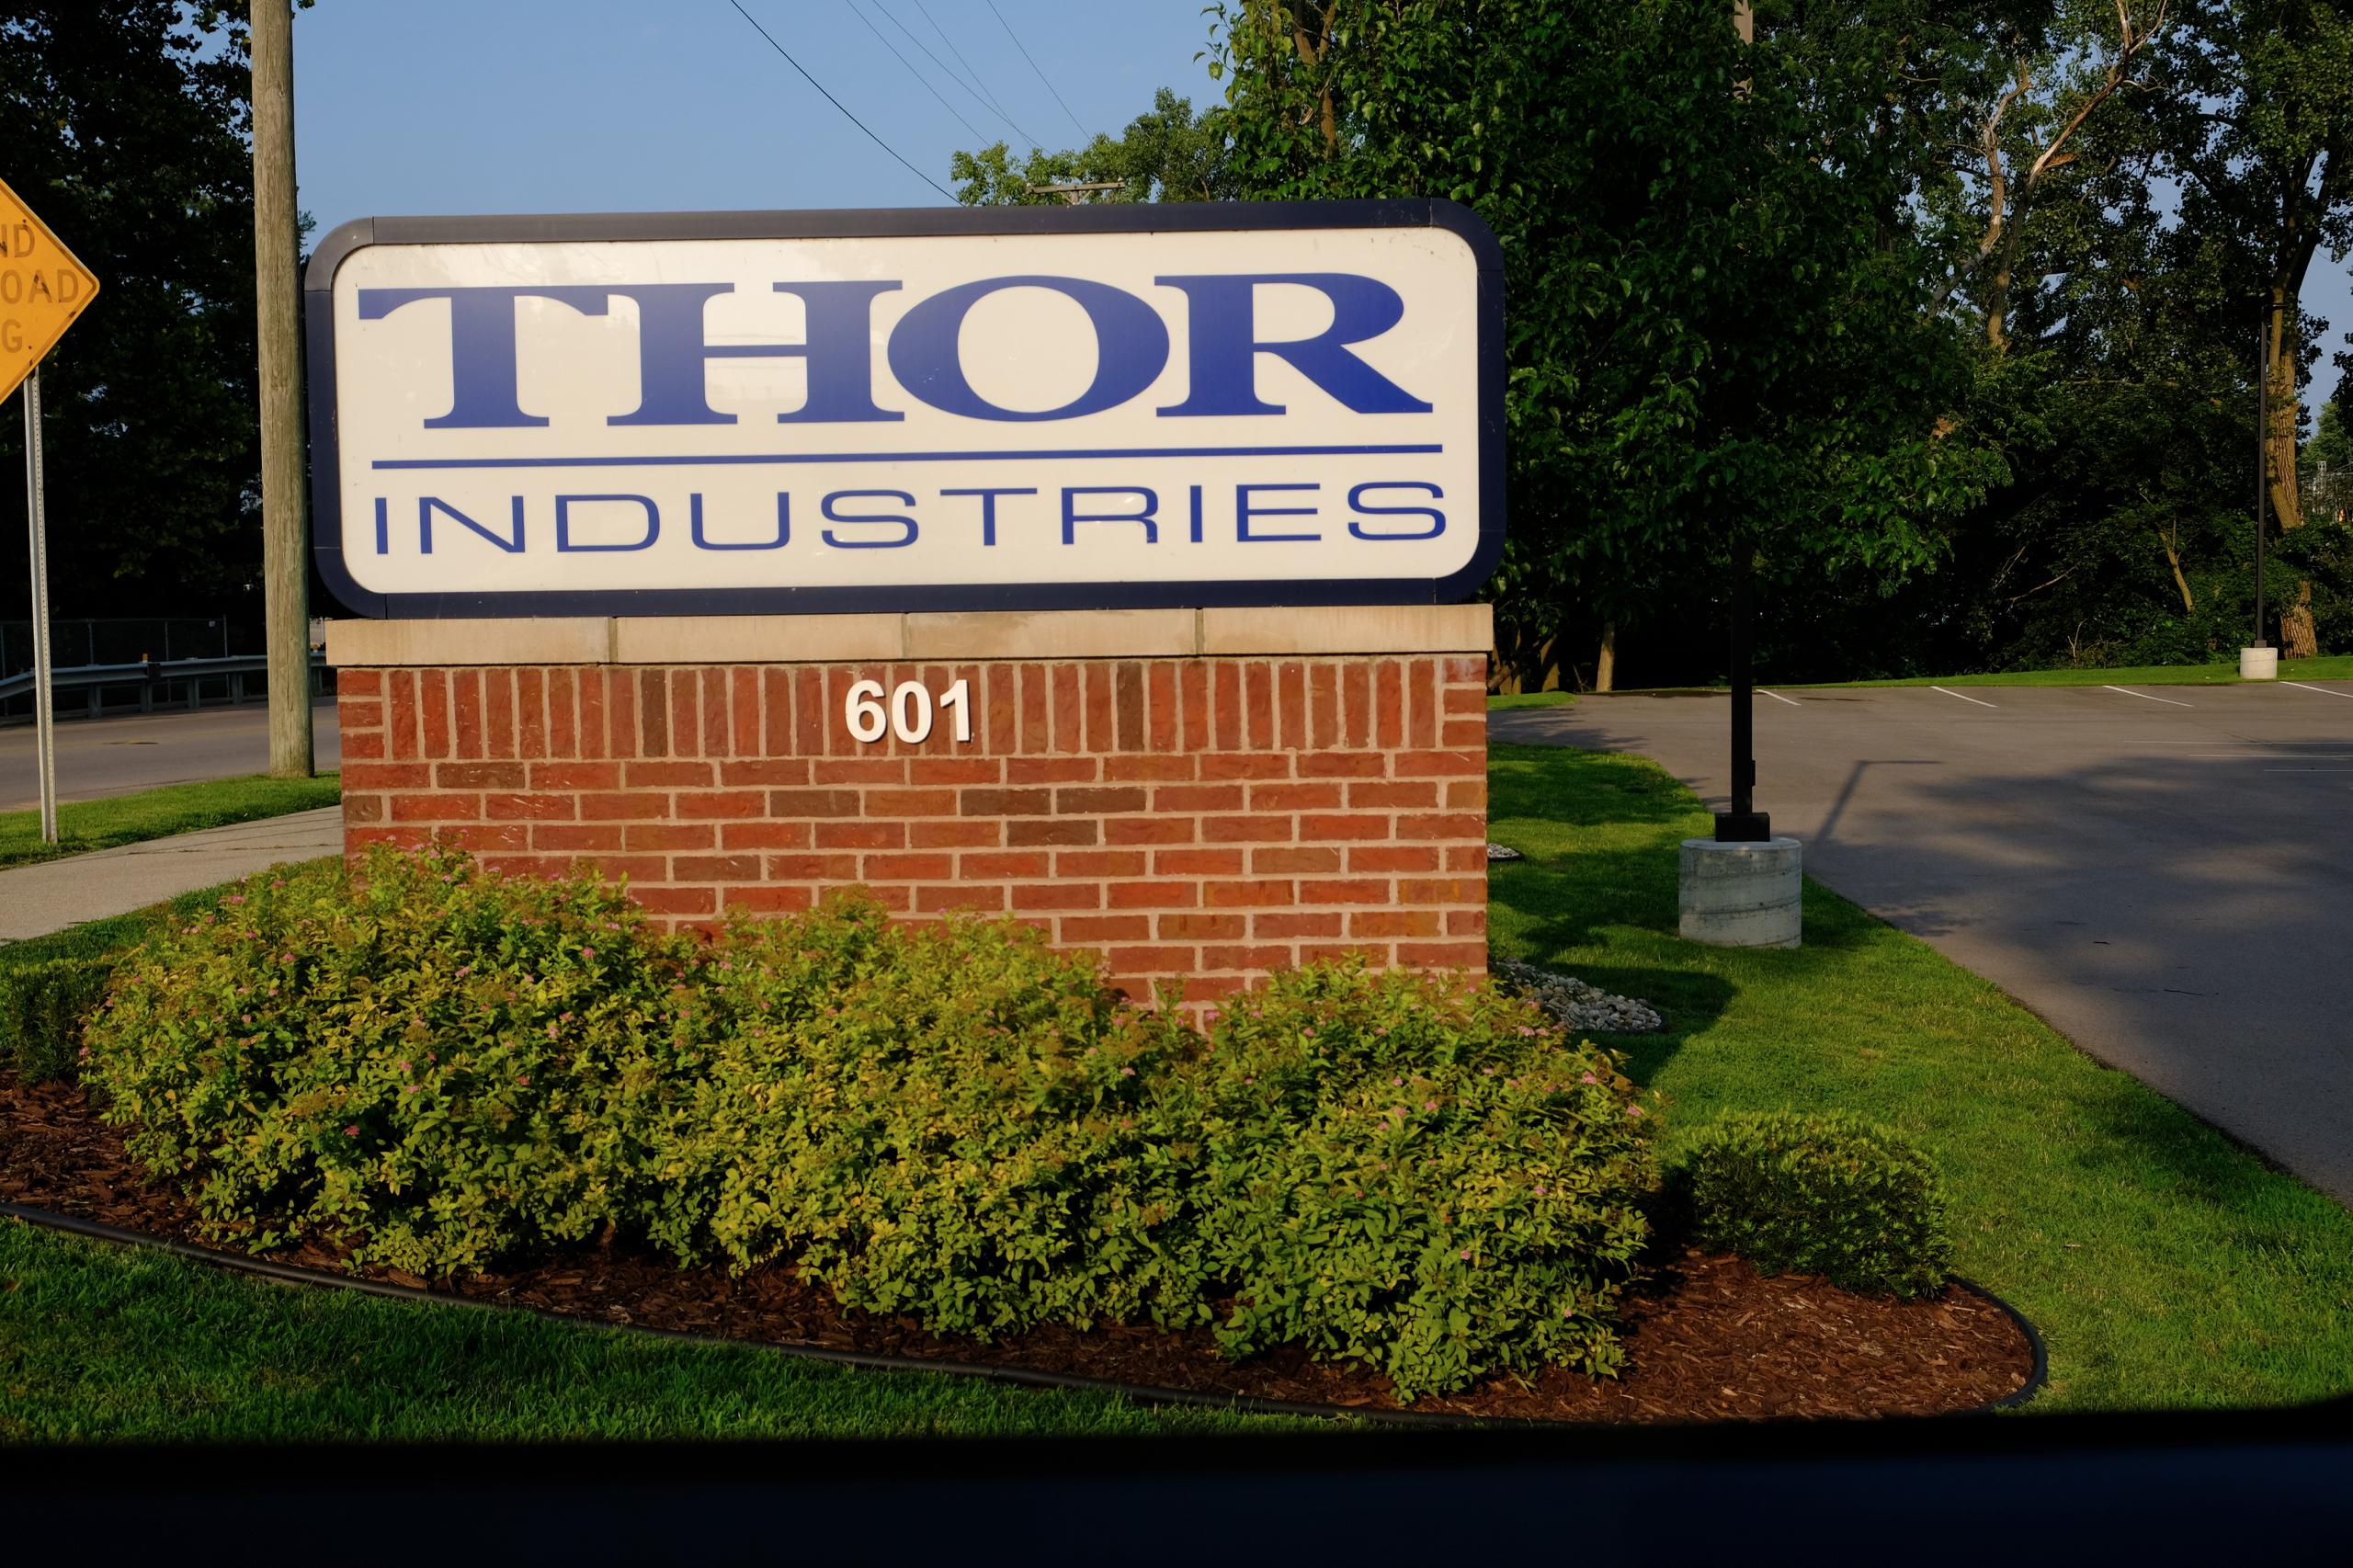 Thor Industries' corporate headquarters in Elkhart, Indiana.